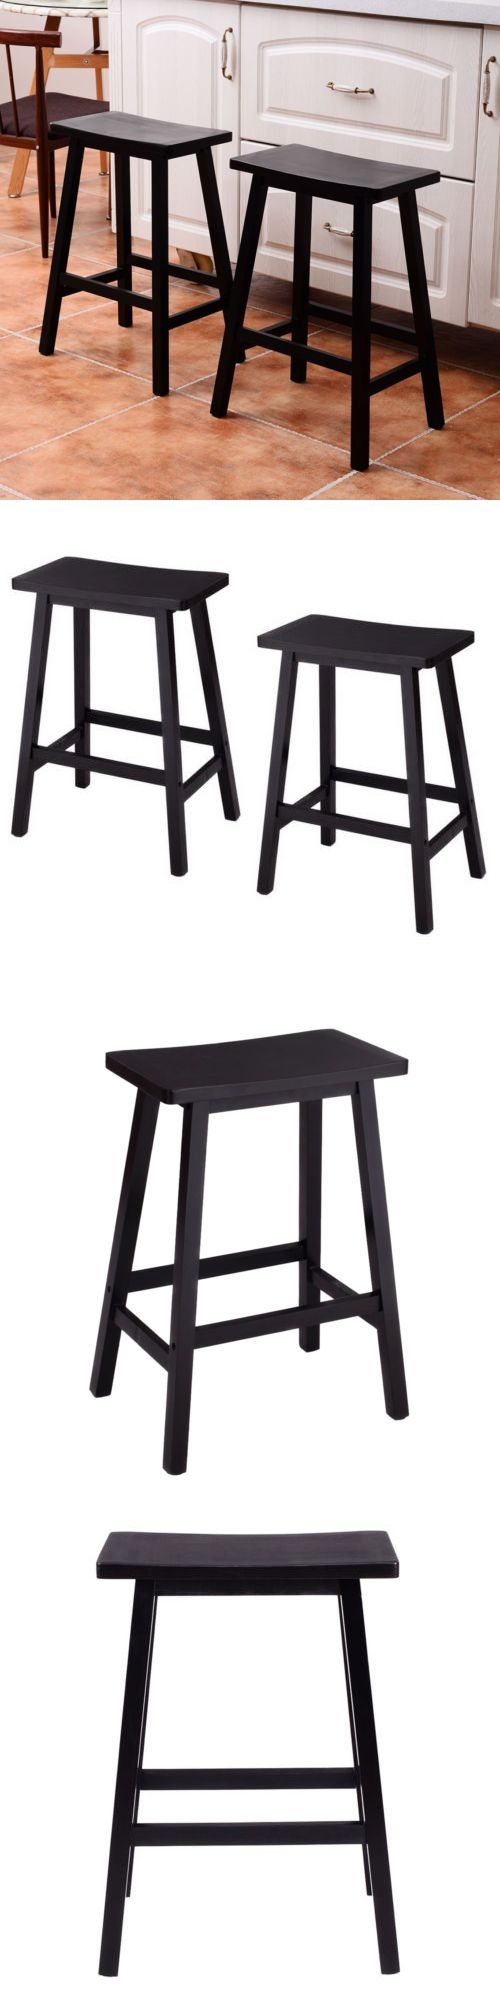 Bar Stools 153928: Set Of 2 Bar Stools Kitchen Dining Room Saddle Seat Wooden Pub Chair 24 Inch -> BUY IT NOW ONLY: $38.5 on eBay!